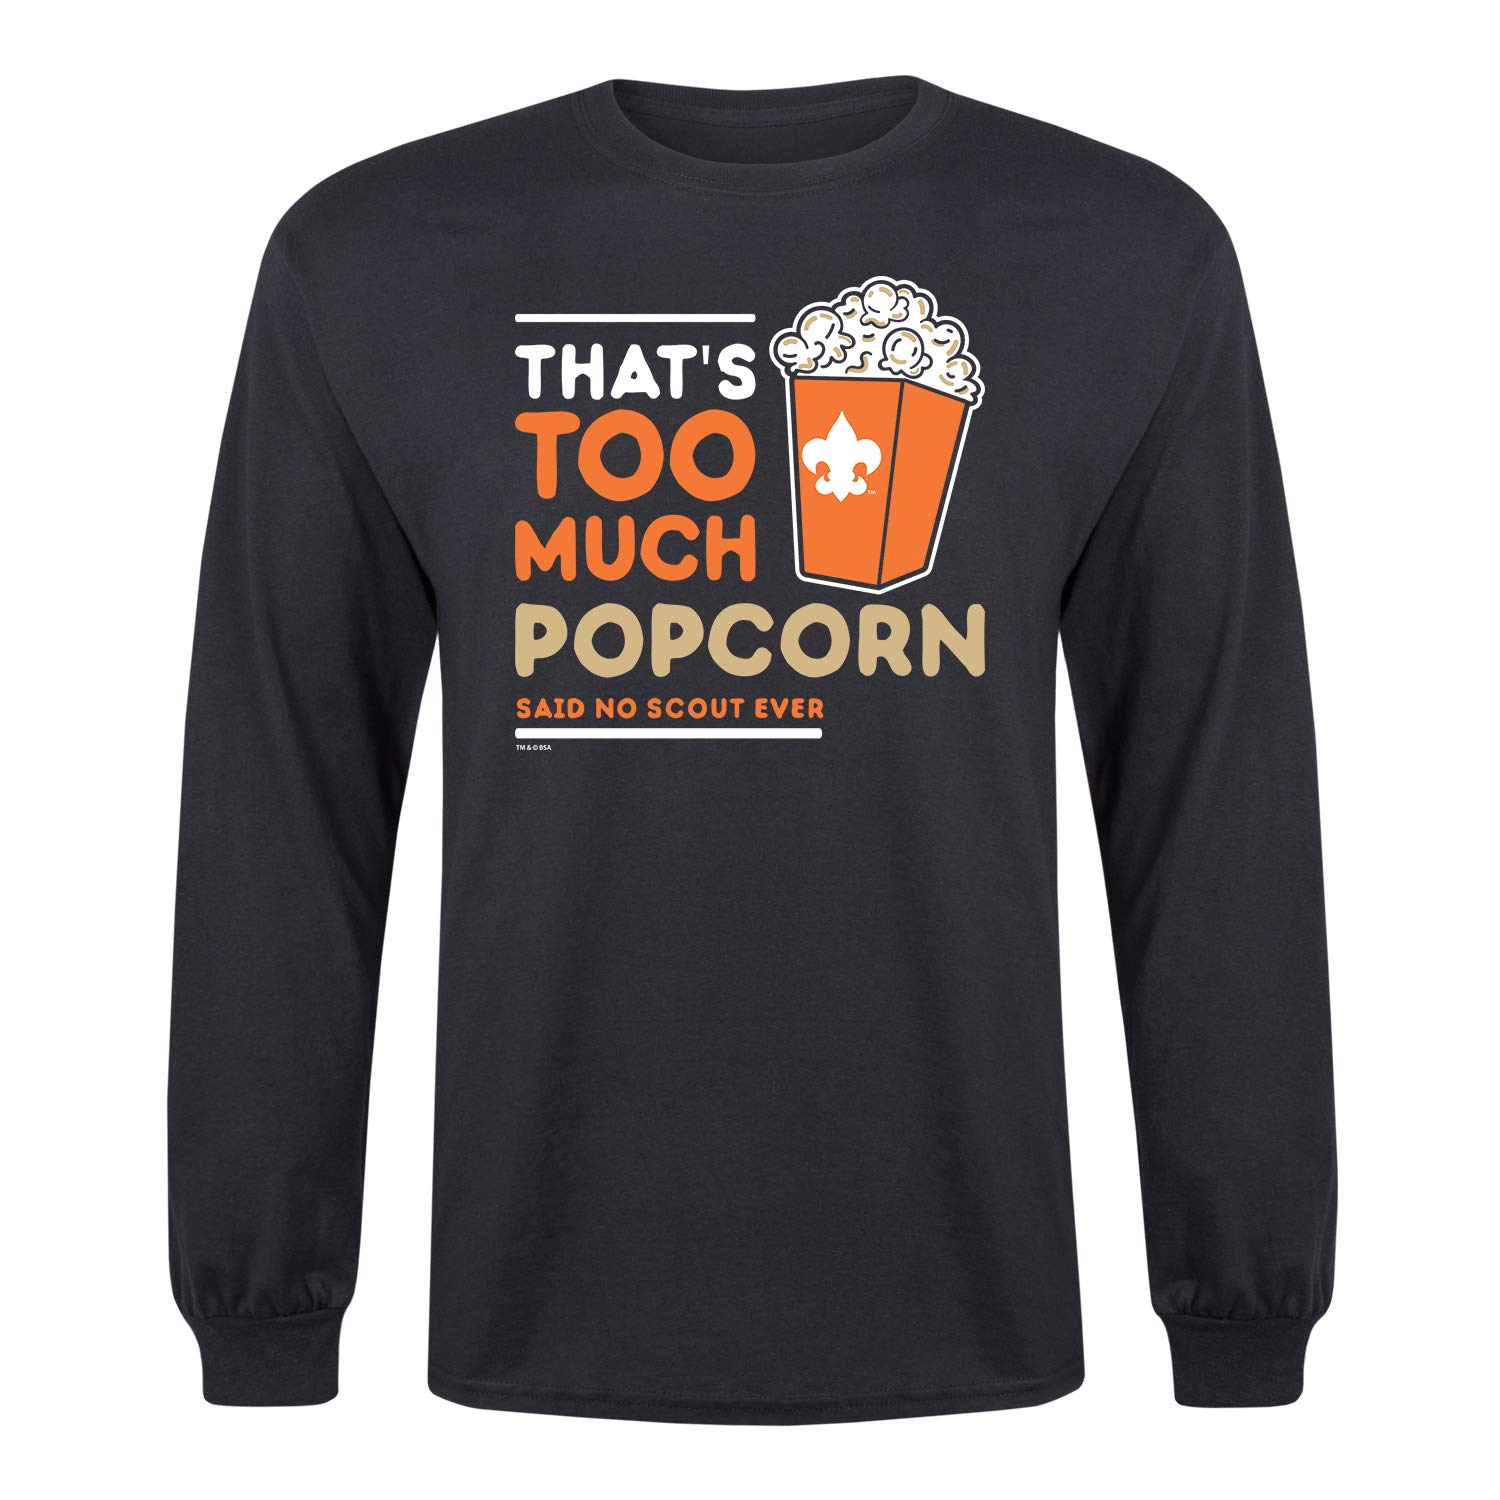 Boy Scouts of America Thats Too Much Popcorn - Adult Long Sleeve Tee Black by Instant Message